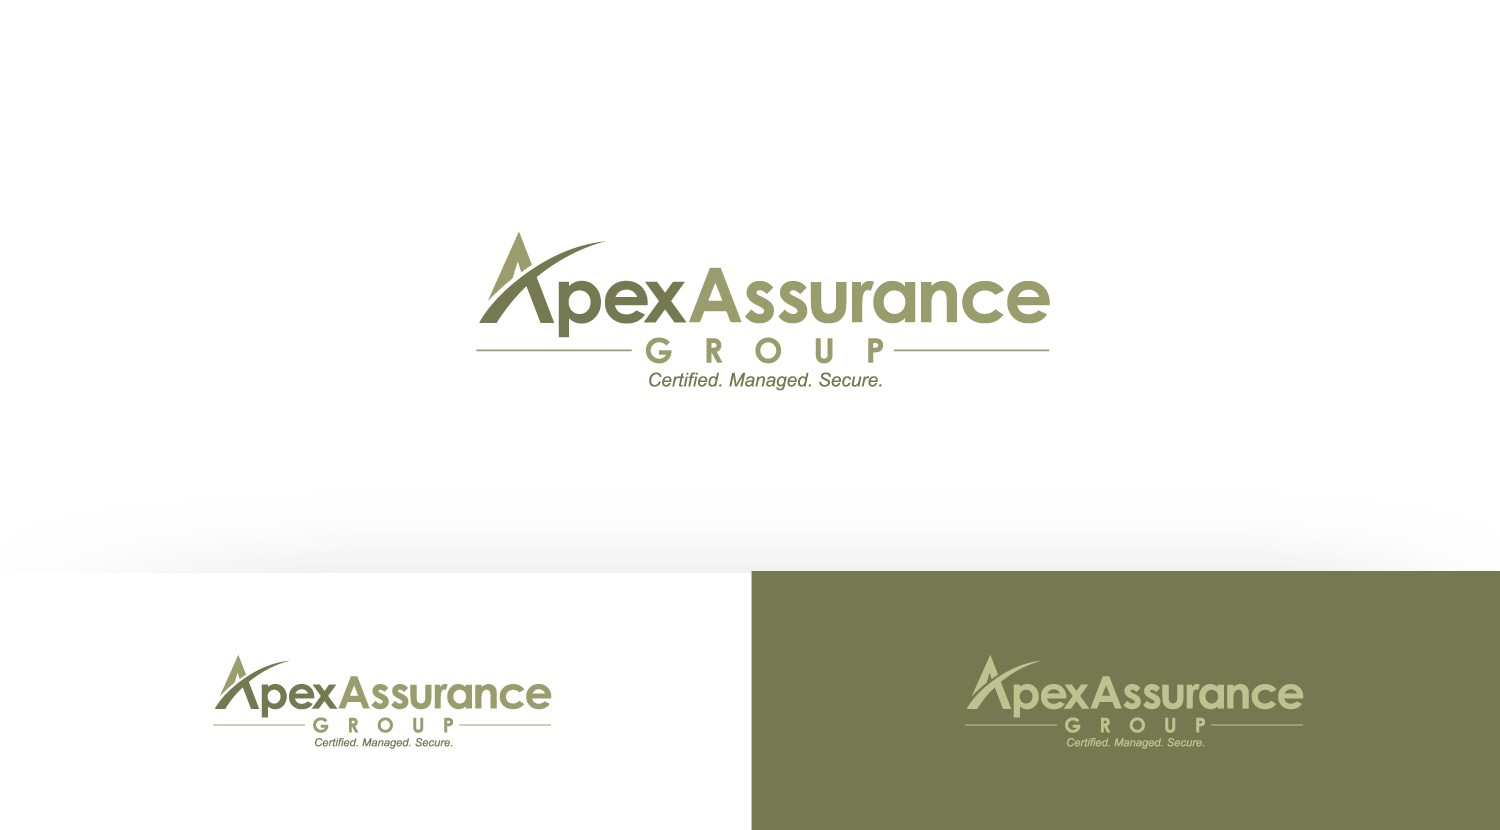 Create the next logo for Apex Assurance Group